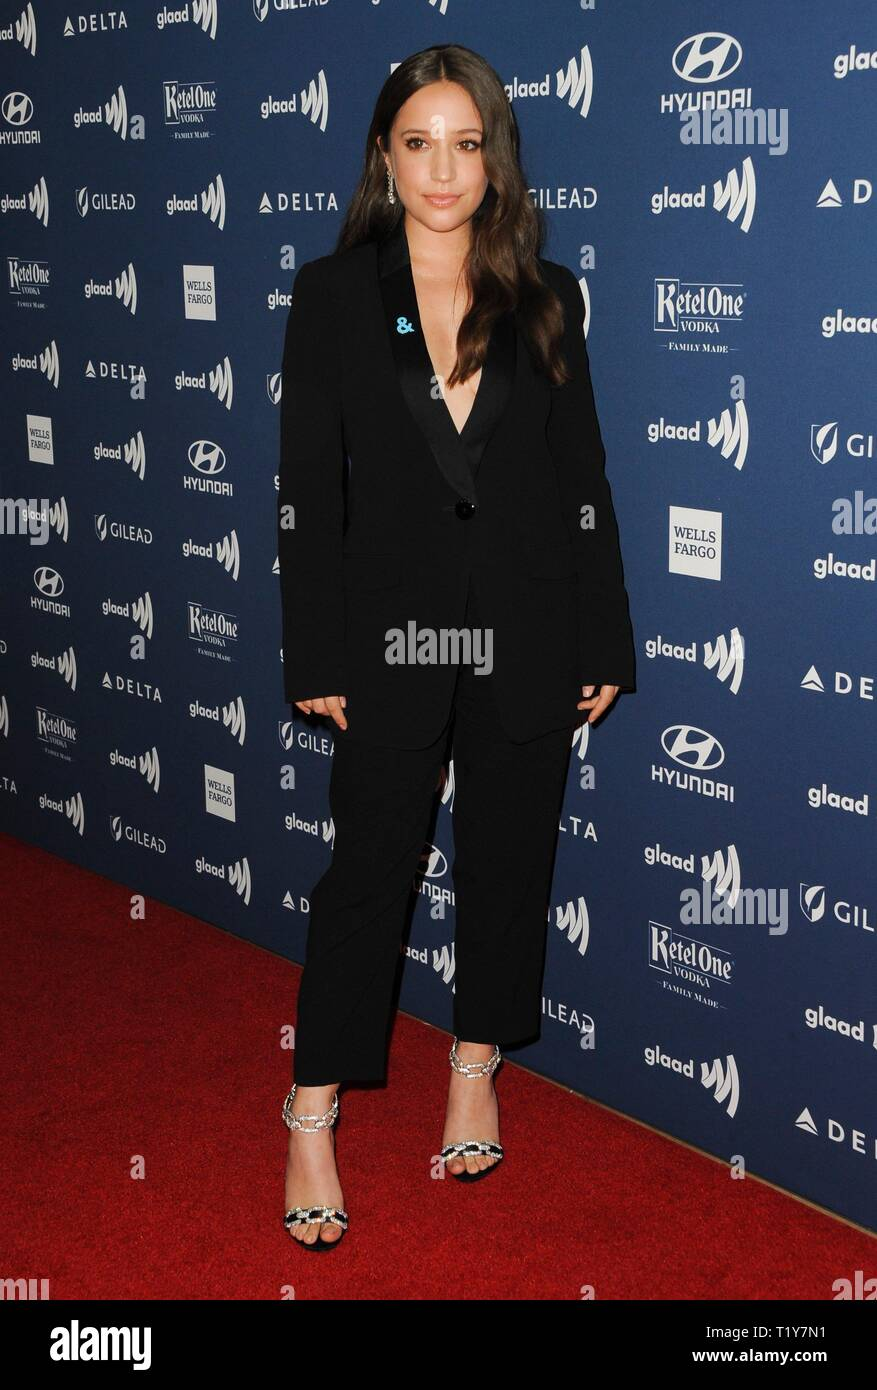 Beverly Hills, CA. 28th Mar, 2019. Gideon Adlon at arrivals for 30th Annual GLAAD Media Awards, The Beverly Hilton, Beverly Hills, CA March 28, 2019. Credit: Elizabeth Goodenough/Everett Collection/Alamy Live News - Stock Image